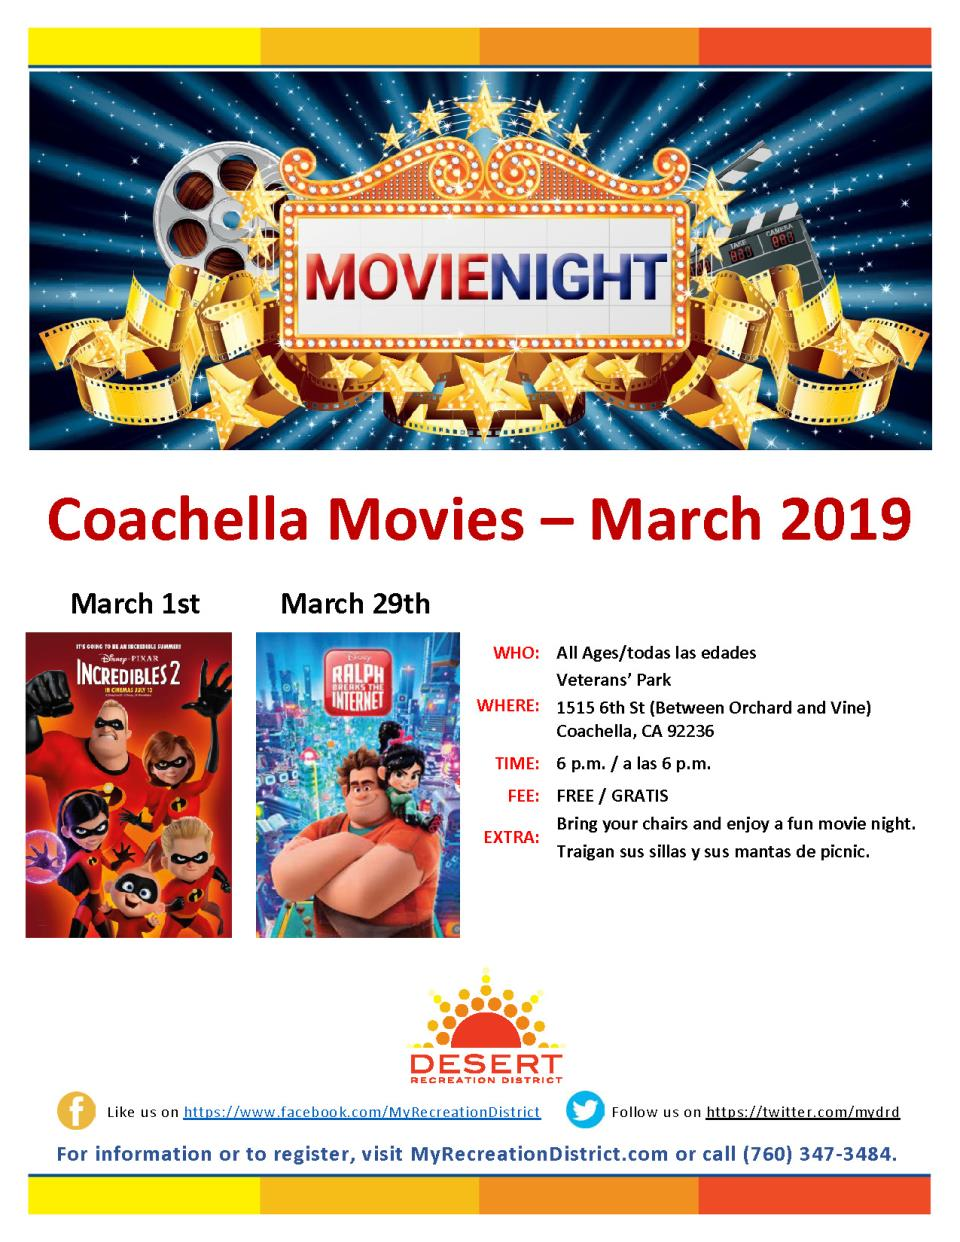 Coachella Movies March 2019 v3